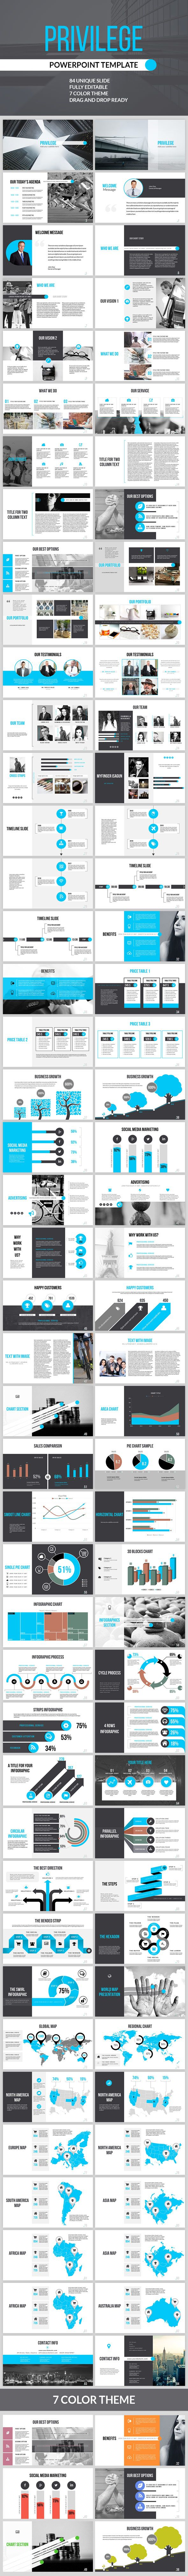 Privilege - Multipurpose PowerPoint Presentation (PowerPoint Templates)                                                                                                                                                                                 Mais